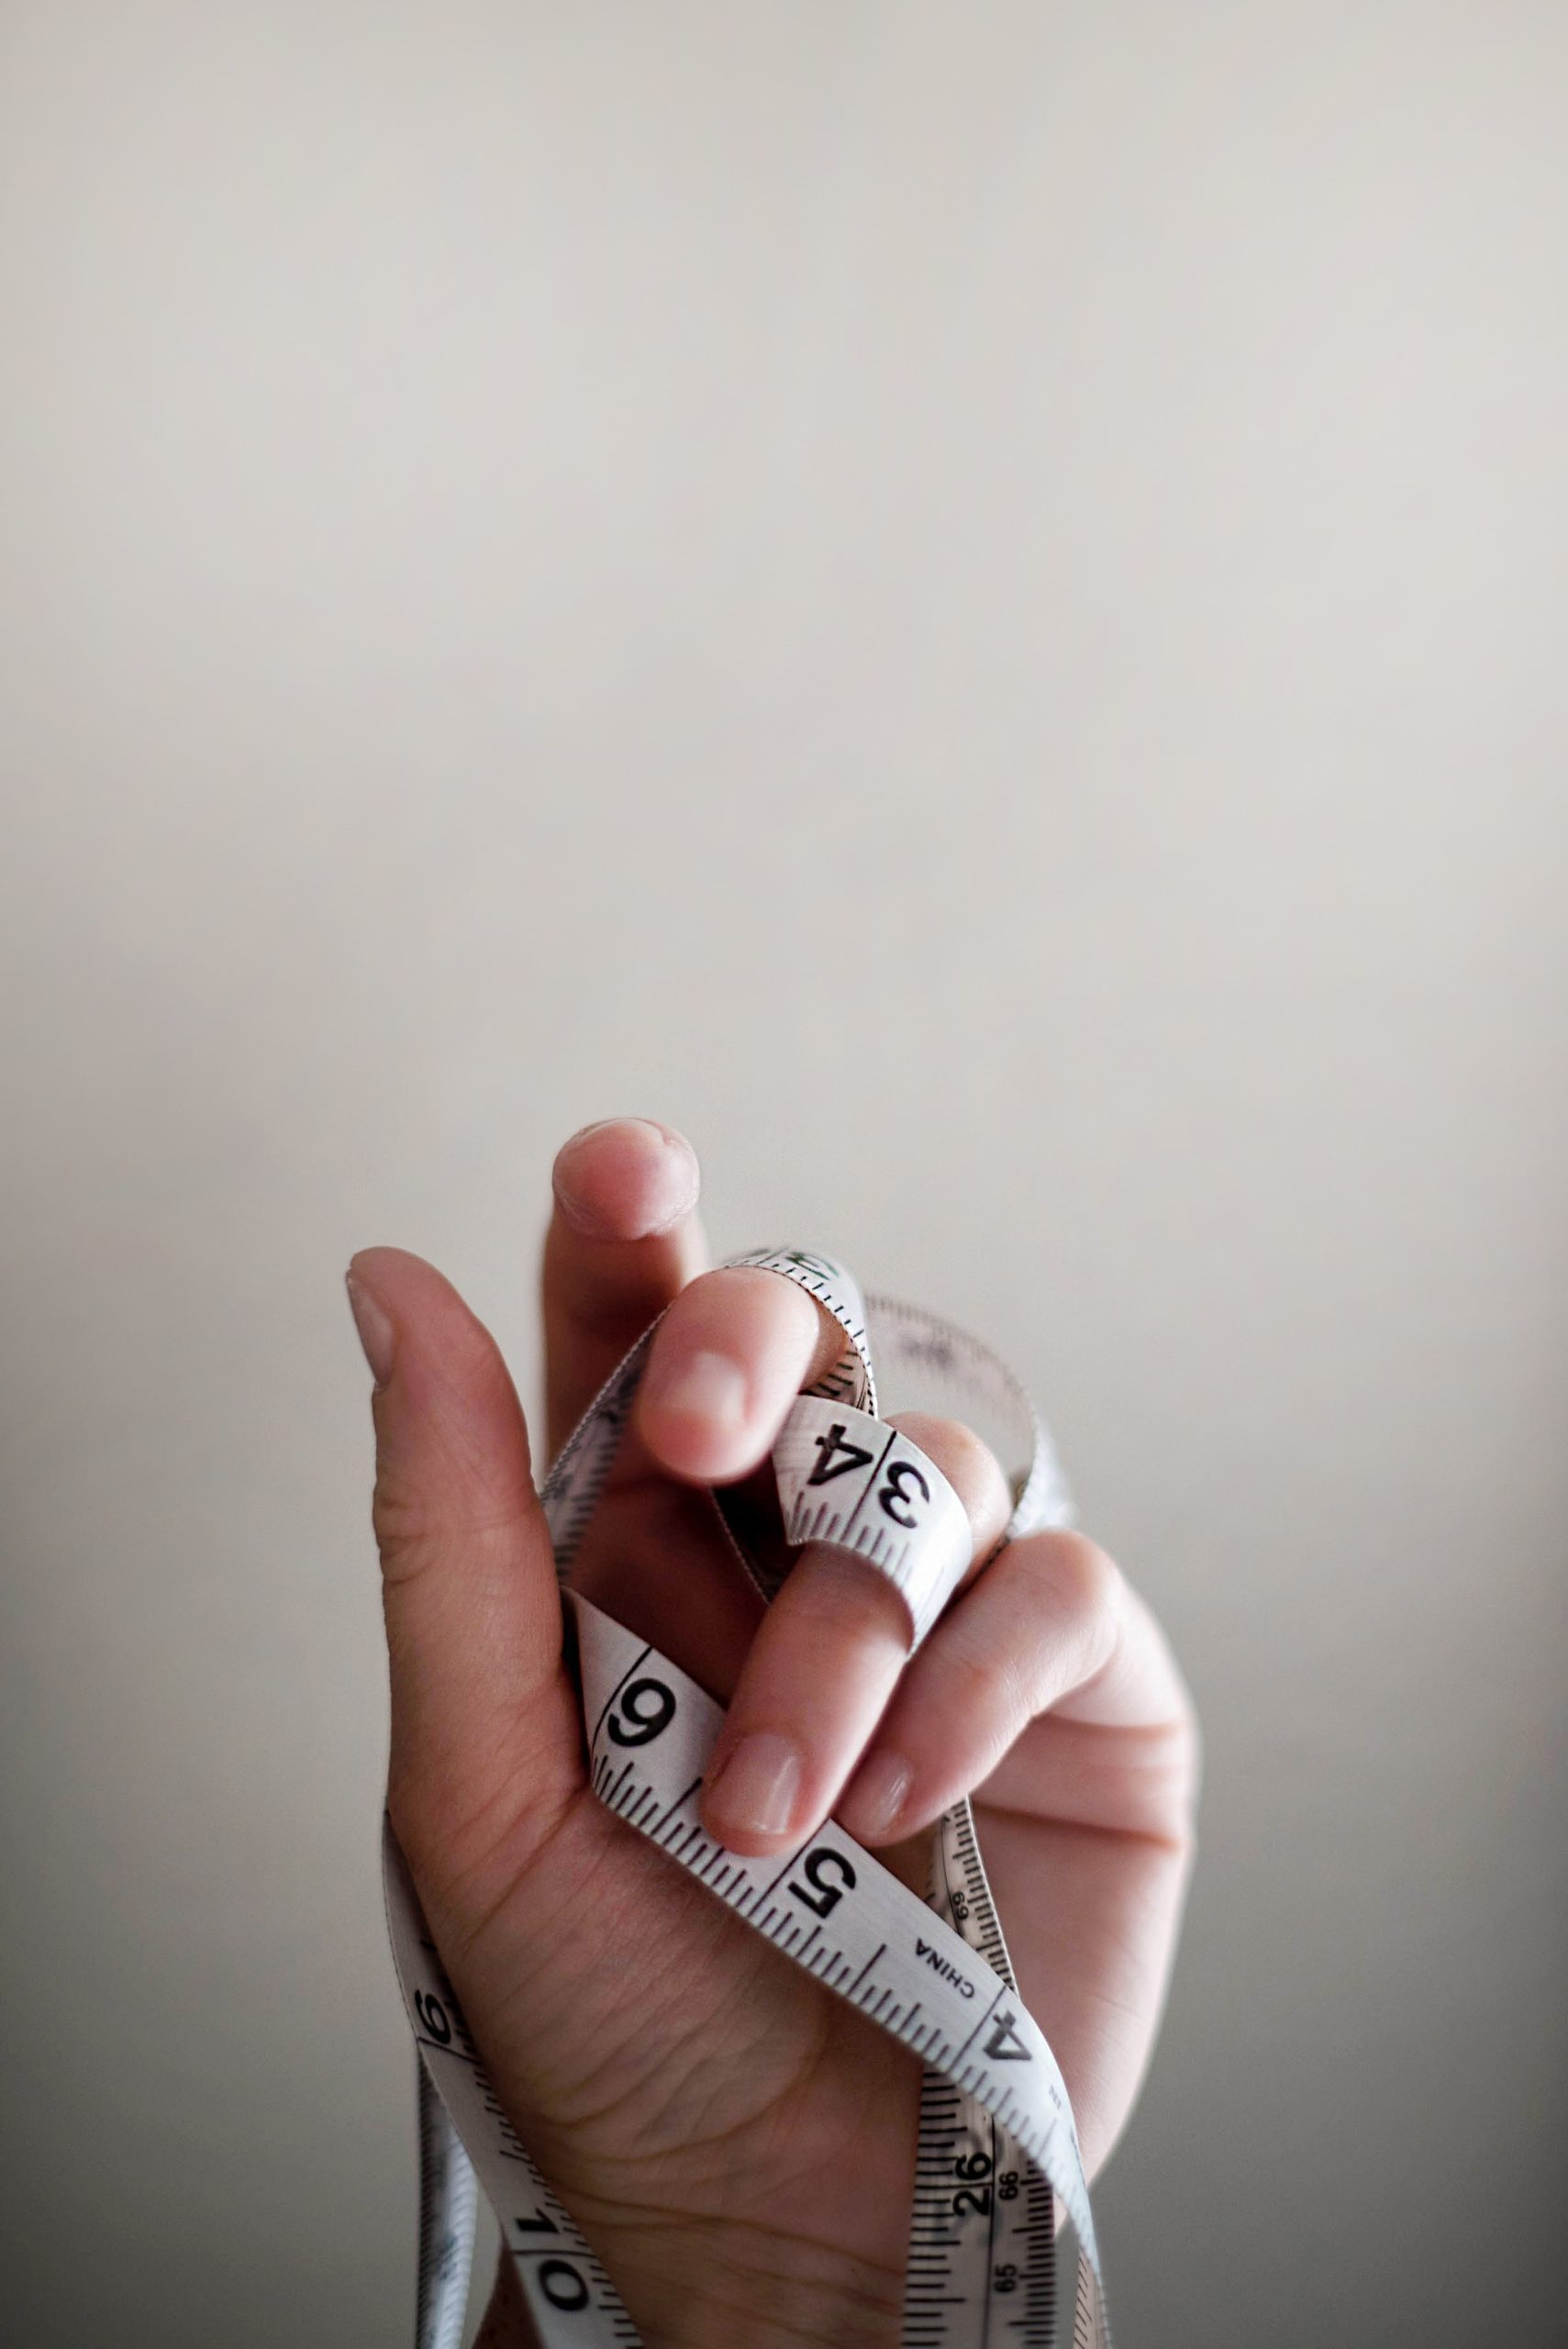 How to lose the Christmas weight; a picture of a hand holding a measure, indicating weight loss